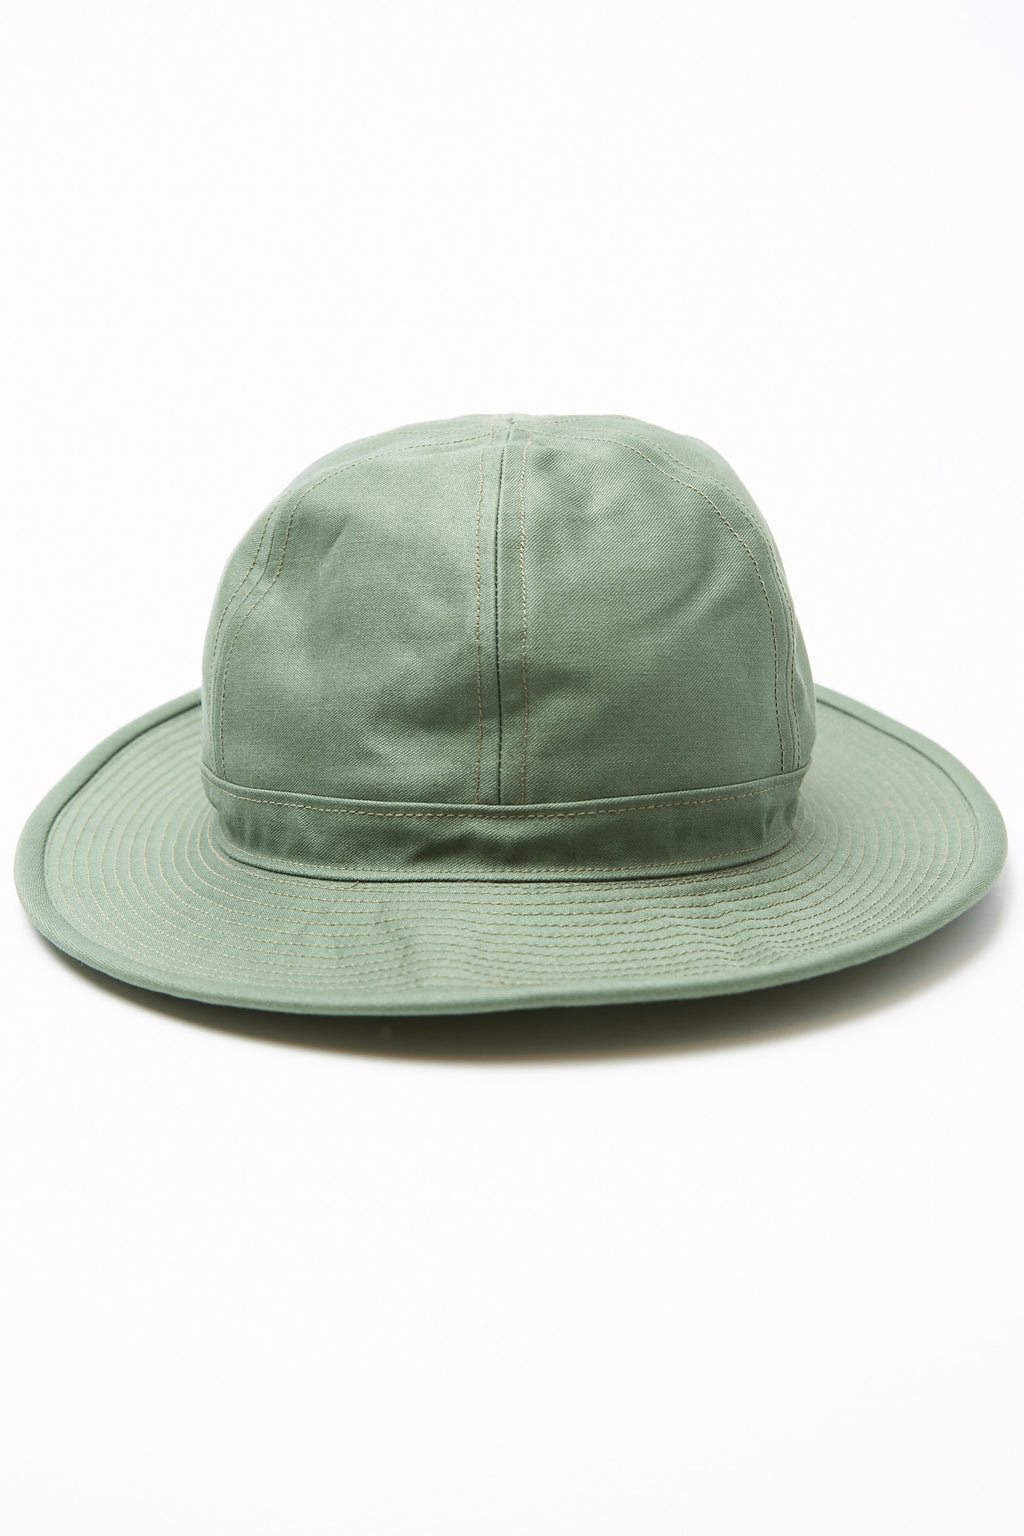 Beams Plus MIL Hat - OLIVE/OD